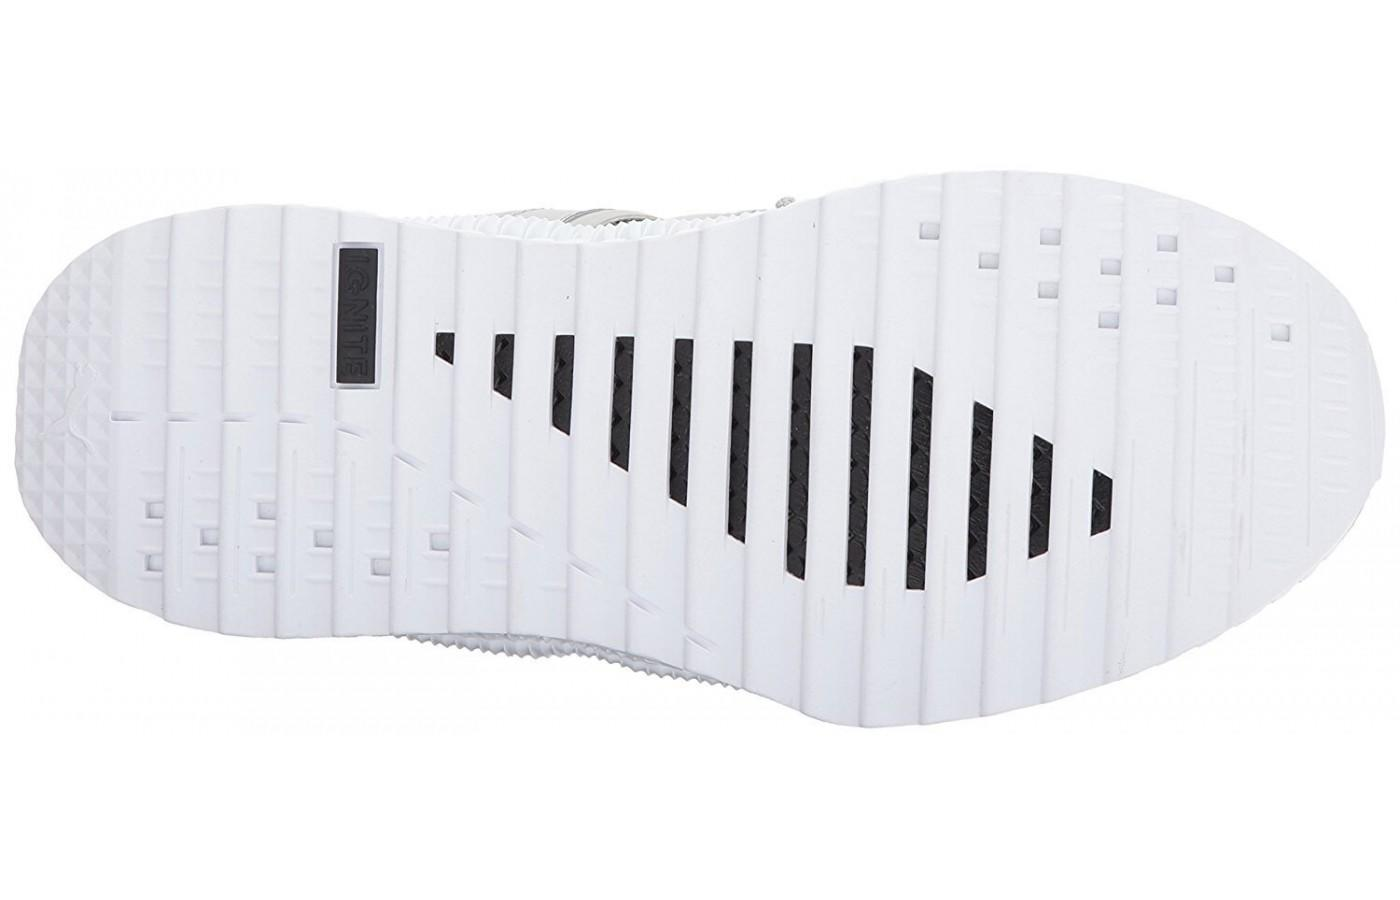 The outsole if flexible and lightweight